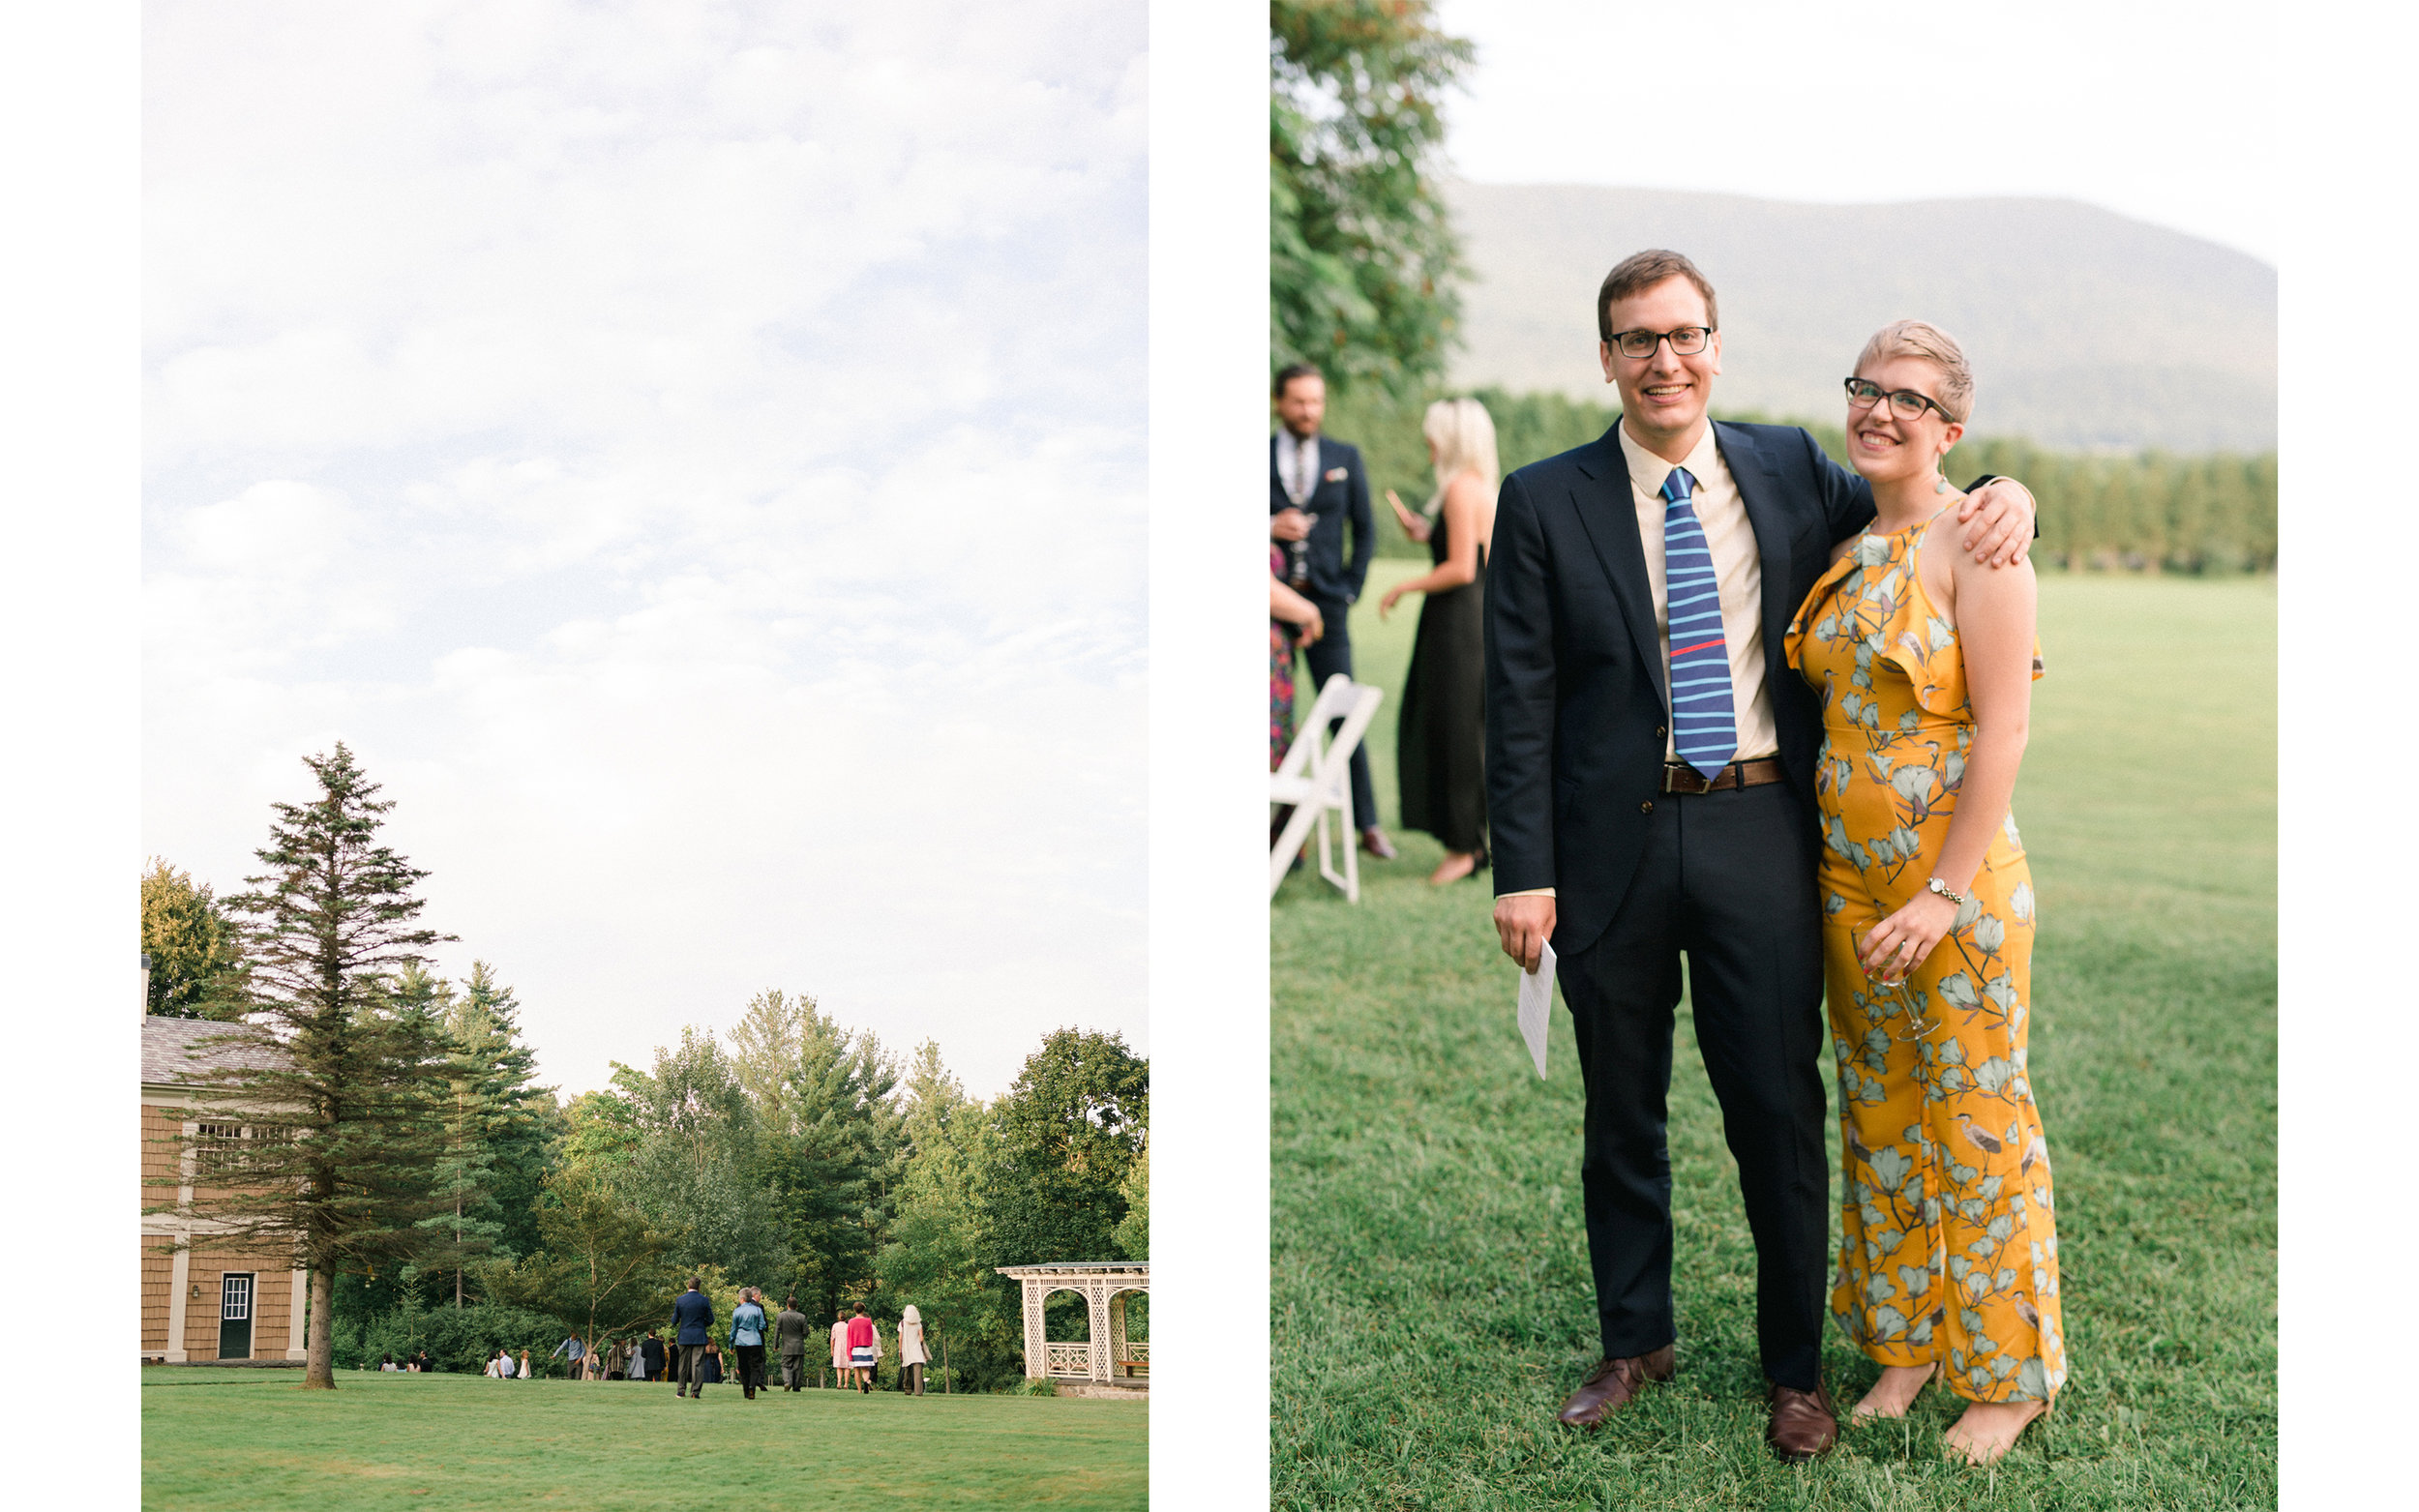 Berkshires Wedding Fine Art Wedding Photographer_Meg Haley Photographs_027.jpg